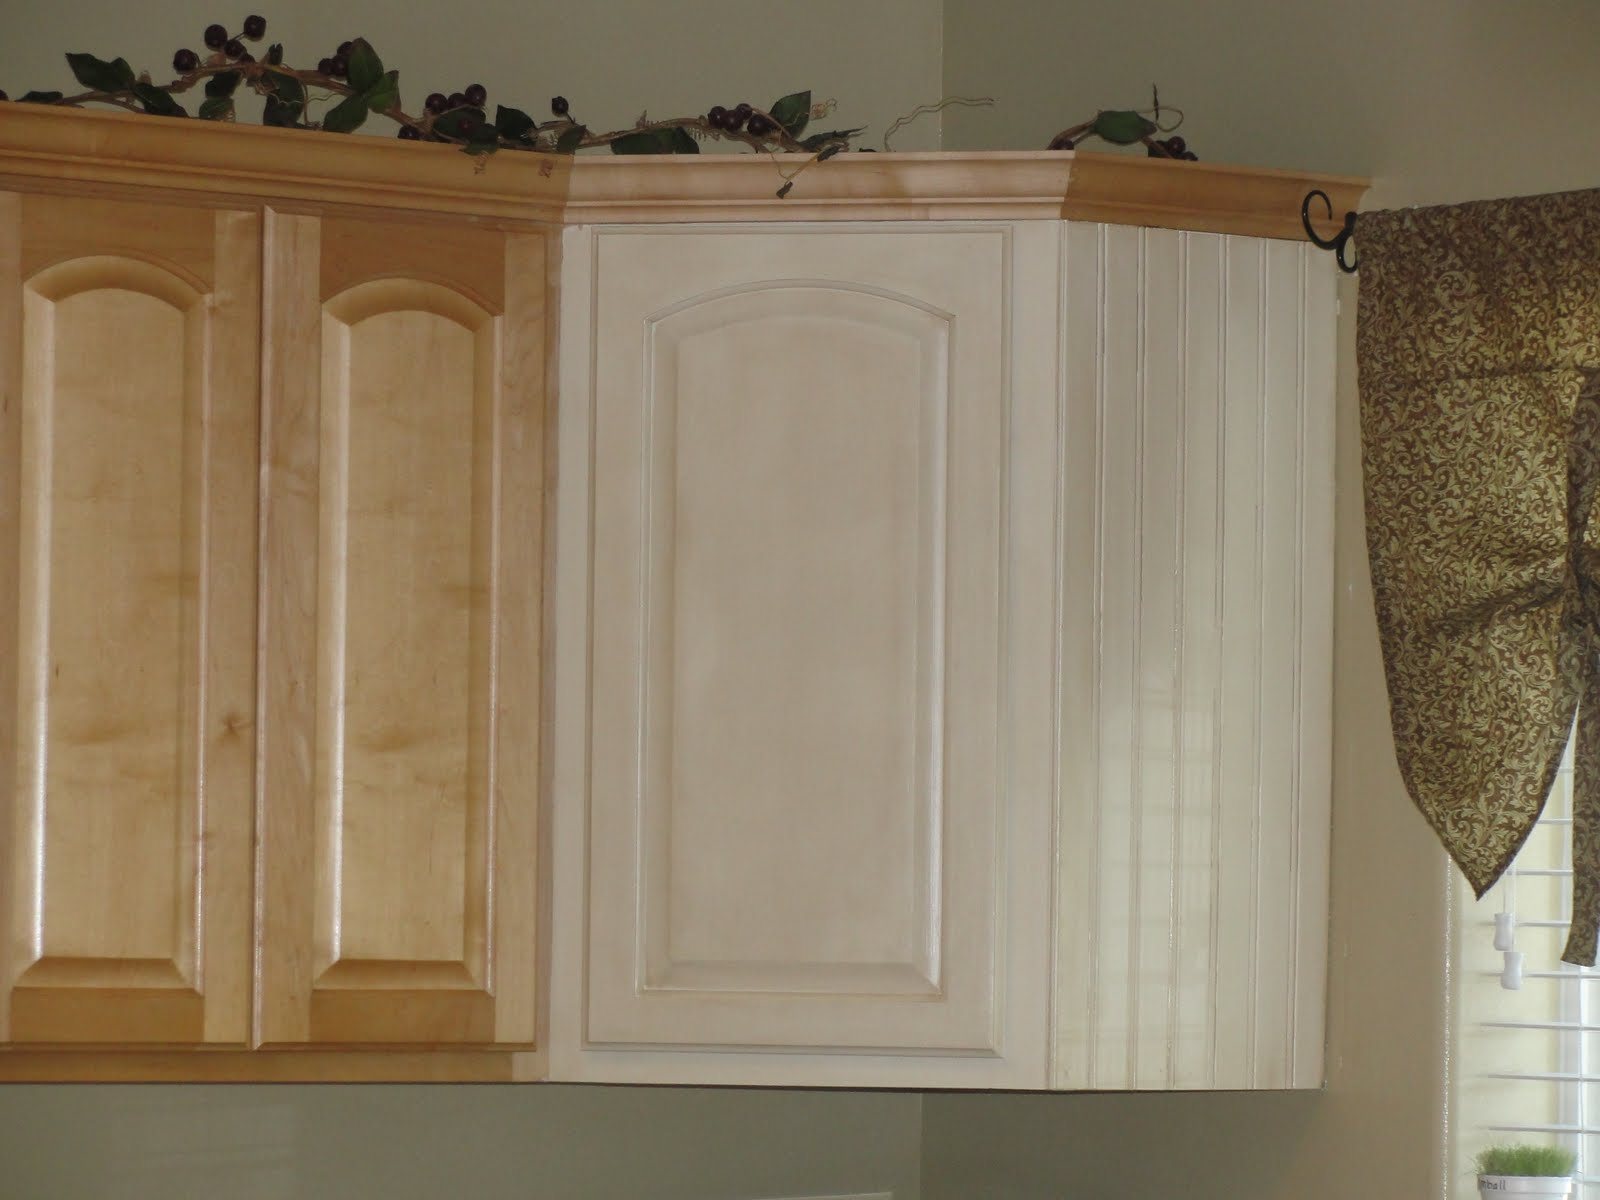 Facelift For Kitchen Cabinets Refinish Gerber Daisies And Giggles Diy Cabinet